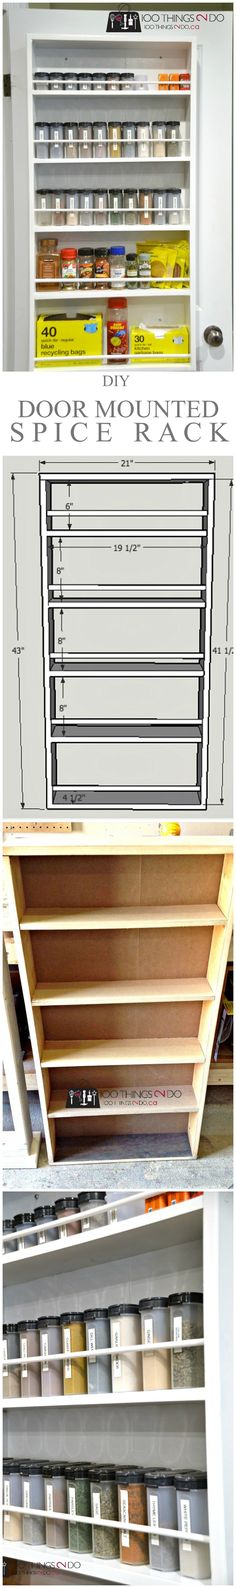 DIY Door Mounted Spice Rack Free plans to build your own DIY door mounted spice rack. An easy build that even a beginner can take on. Utilize the wasted space behind your pantry door. Kitchen Projects, Diy Furniture, Diy House Projects, Pantry Makeover, Diy Projects And Organization, Diy Door, Repurposed Furniture, Door Spice Rack, Door Mounted Spice Rack